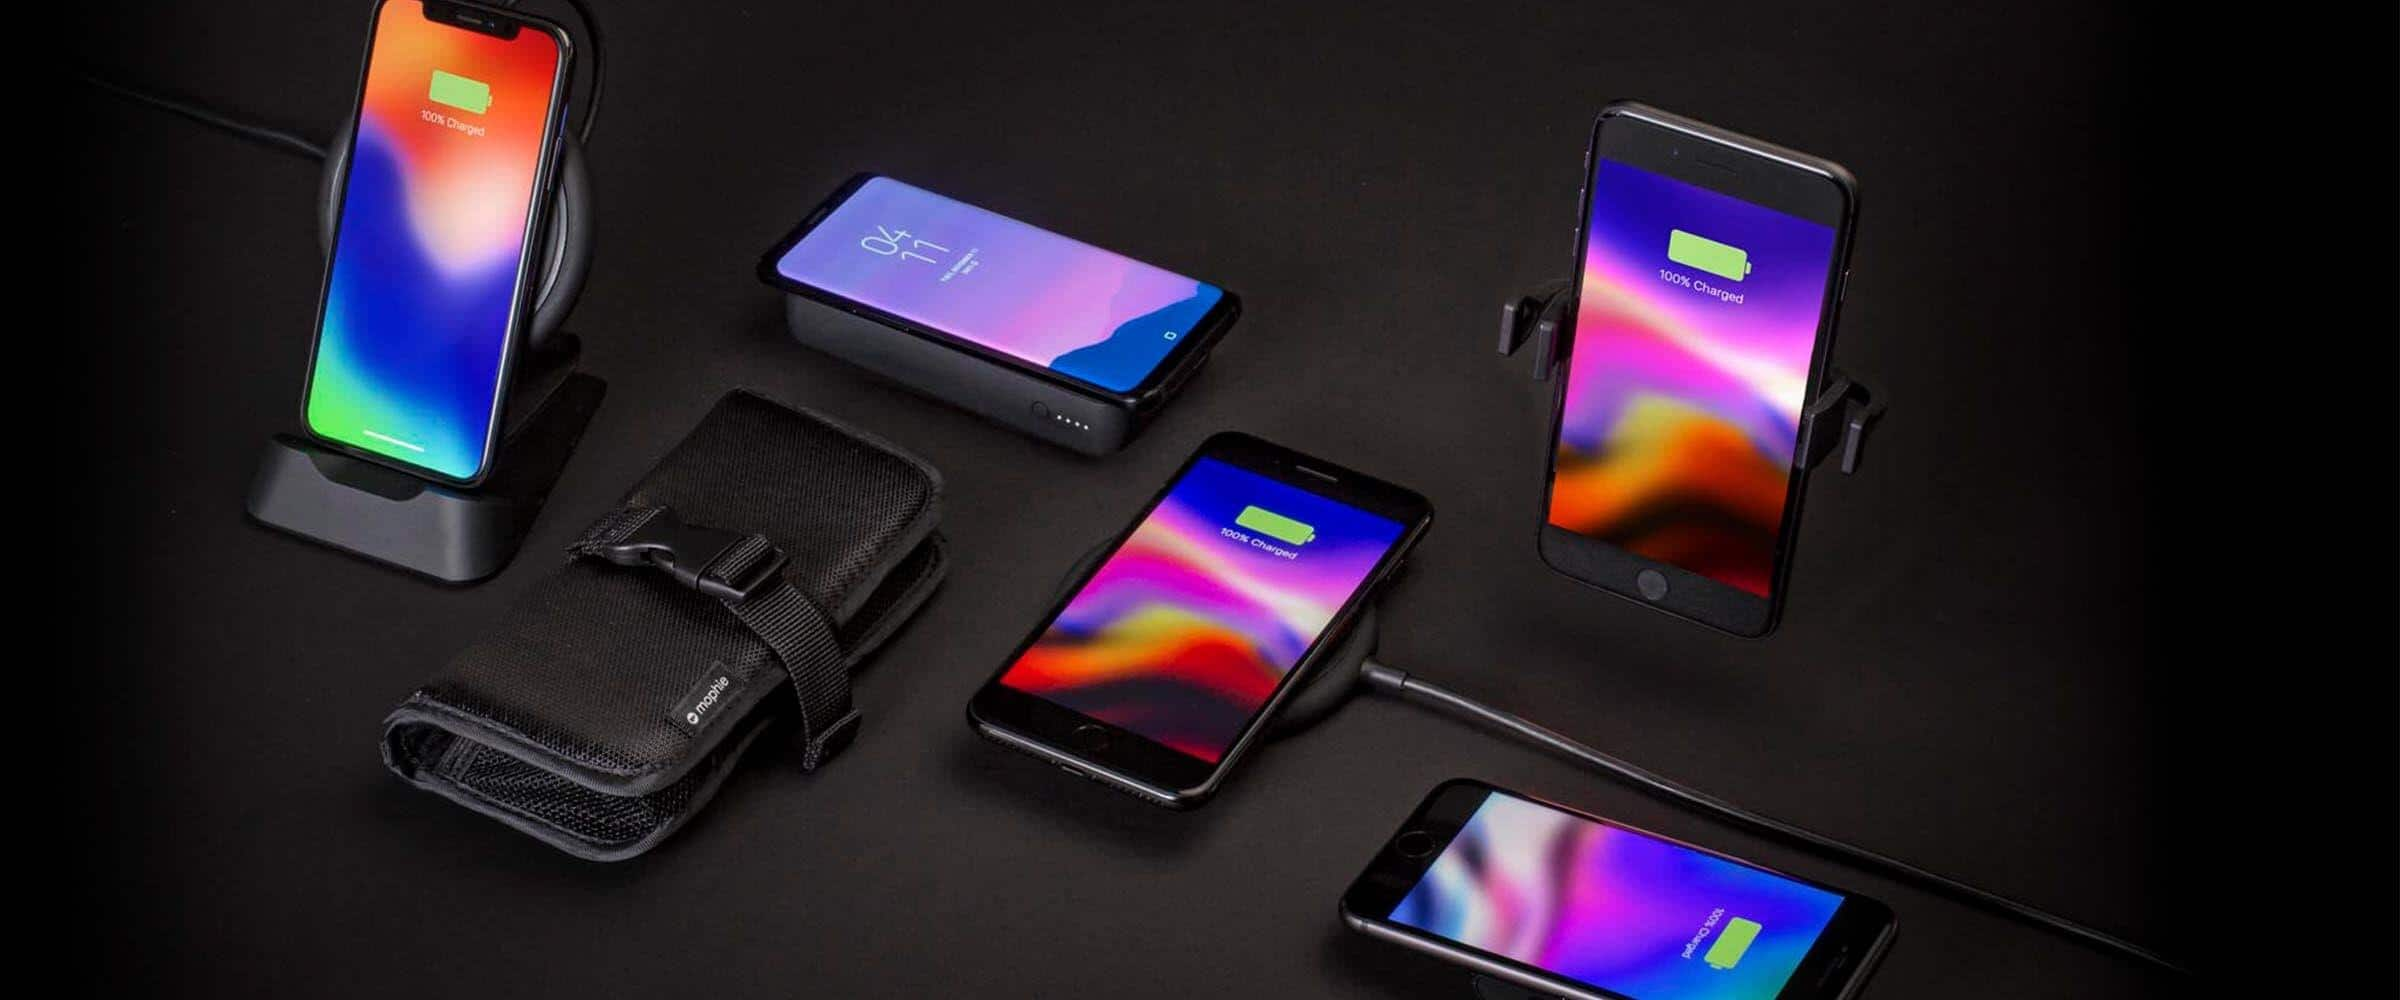 50% Off All ZAGG InvisibleShield Glass+ Screen Protectors for iPhones, Samsung Galaxy, Pixel 3 - $9.99 + Free Shipping